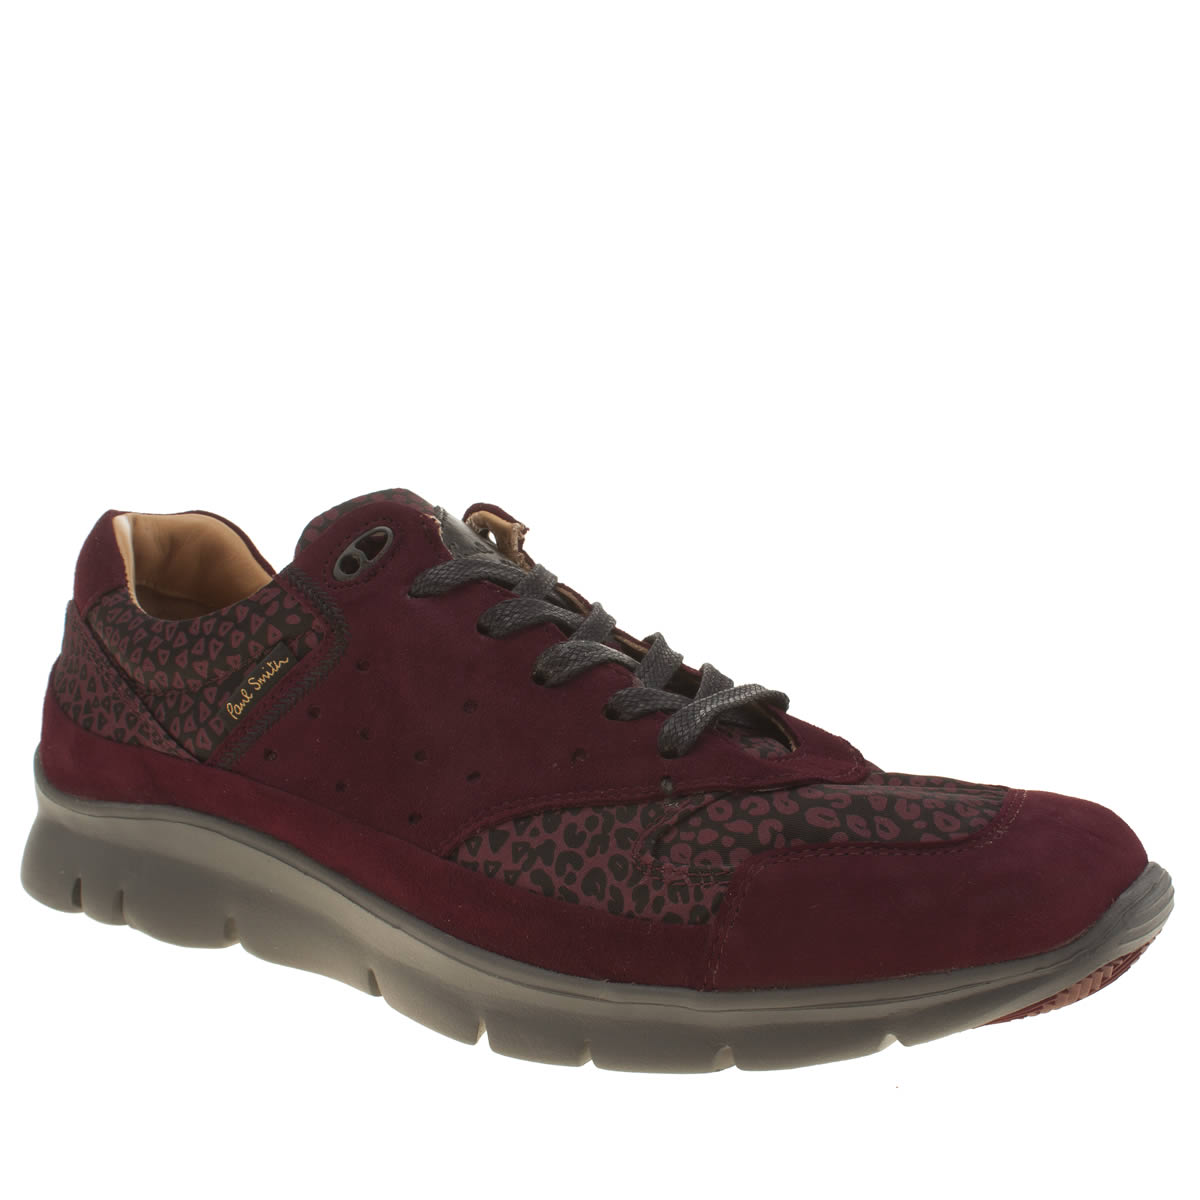 Paul Smith Shoes Paul Smith Shoes Burgundy October Trainers